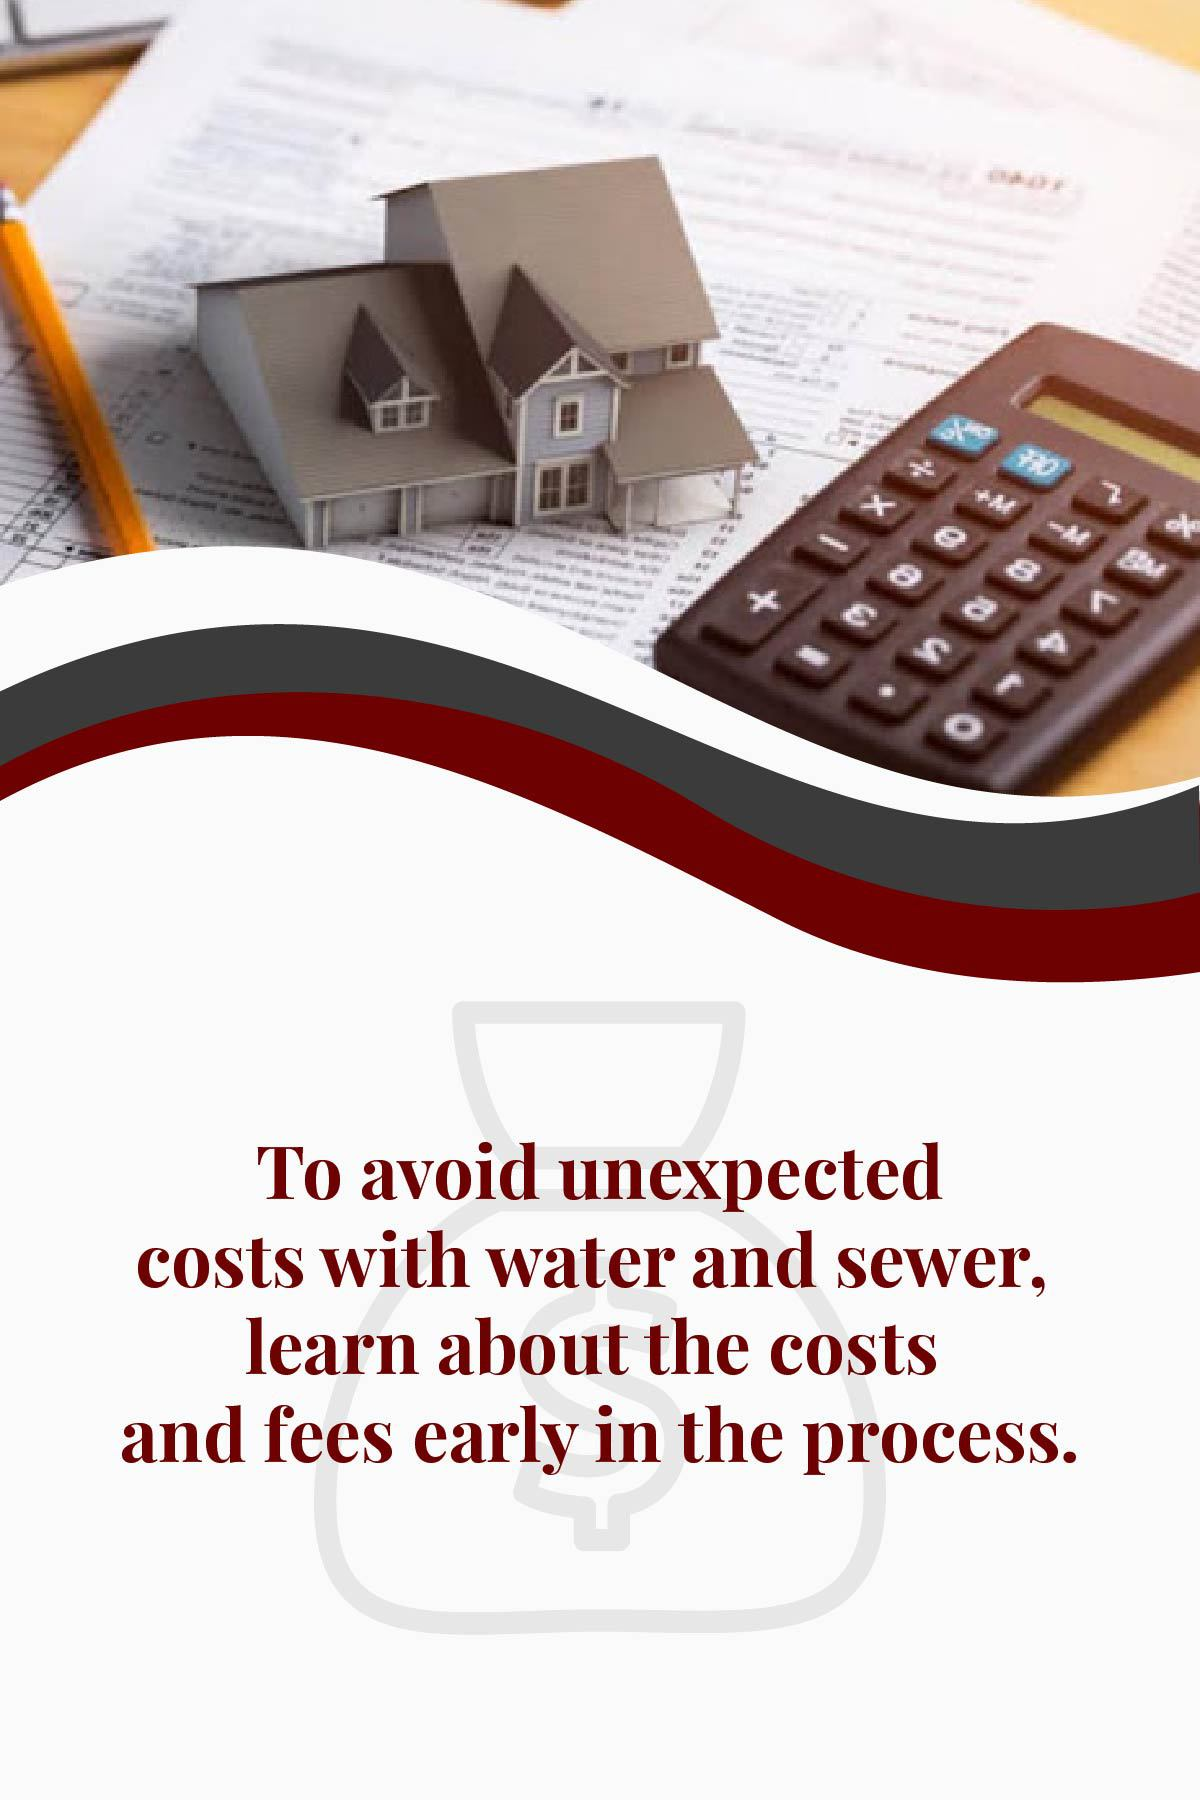 learn about water and sewer fees for a new house